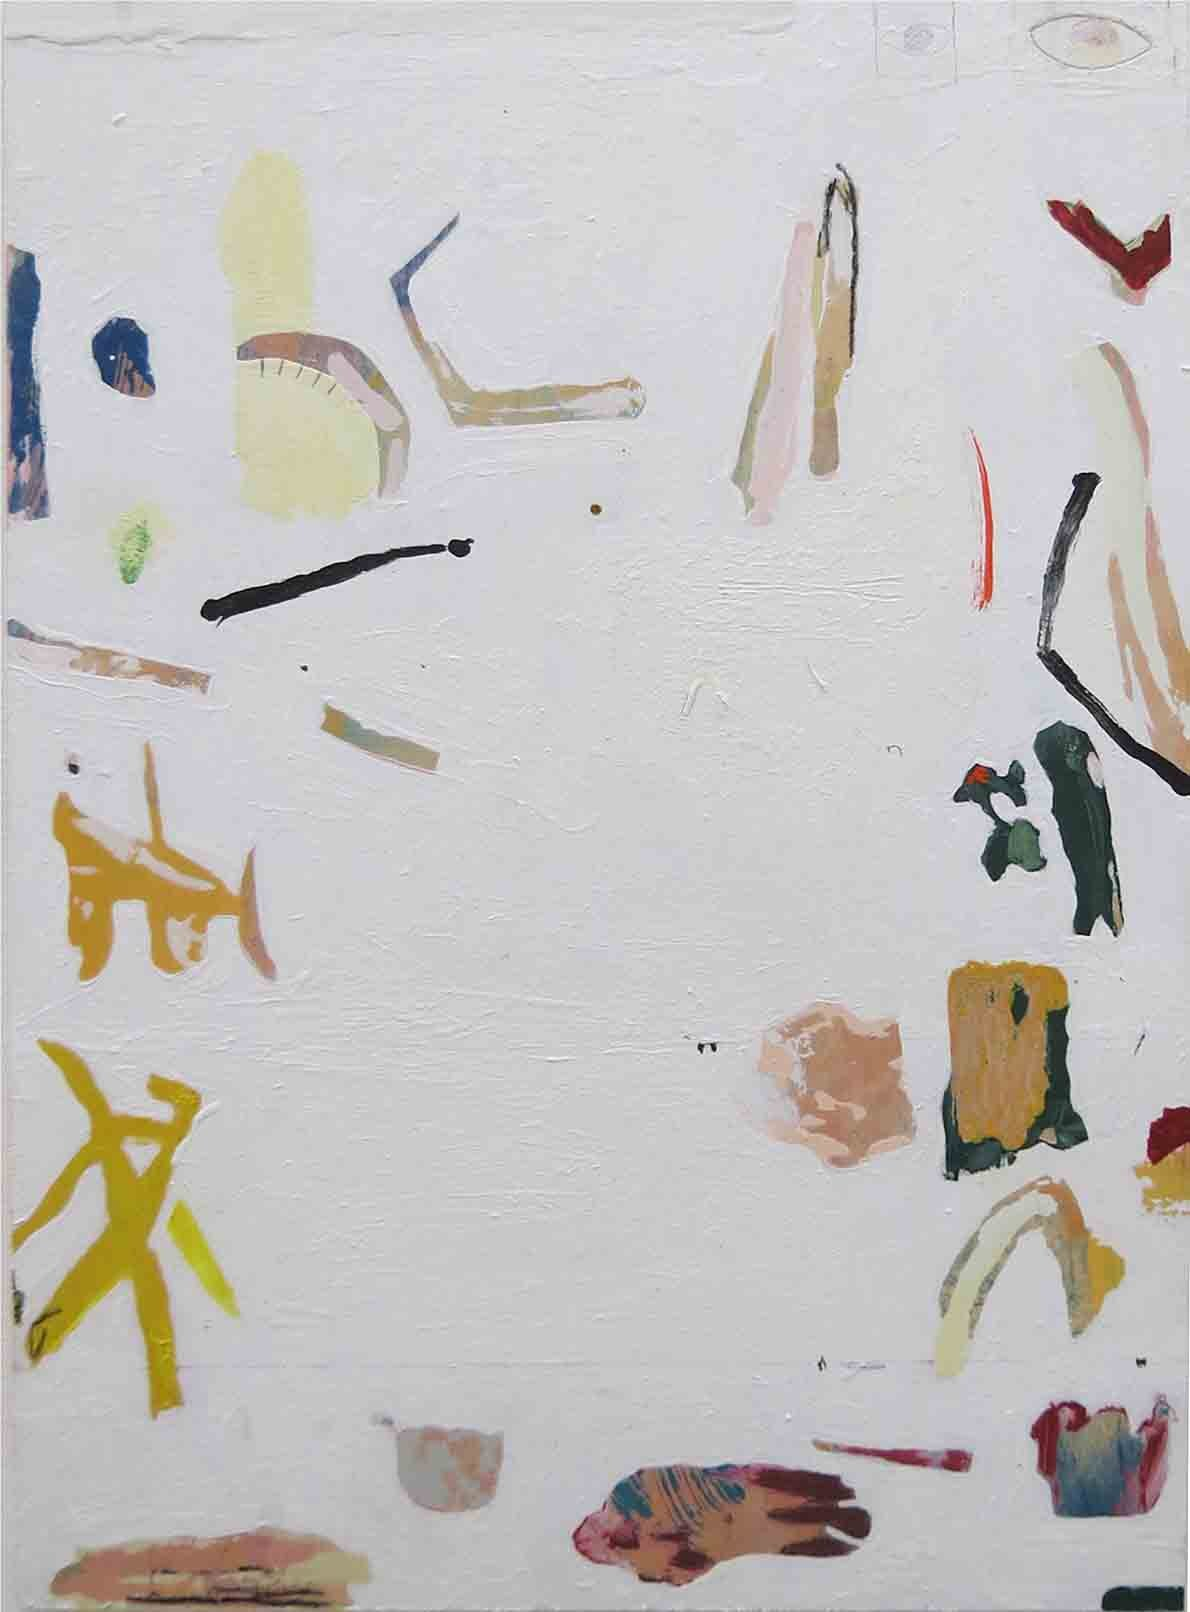 19. Stephen Brameld, A Deconstruction of WA Wildflowers, 2019, acrylic, oil, pencil and paper on board, 42 x 29.7 cm $100